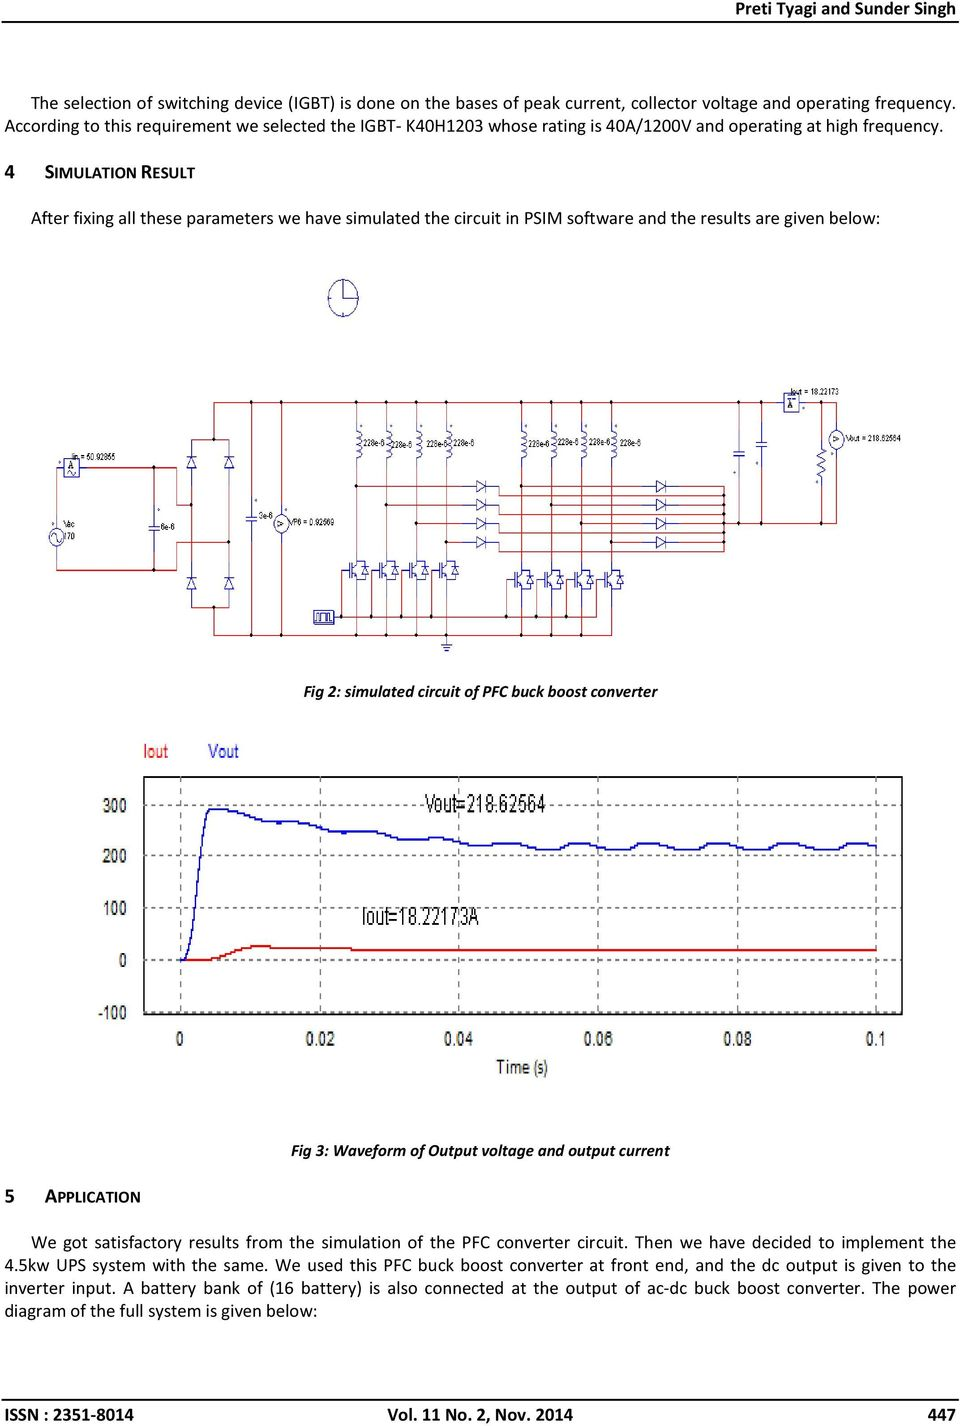 4 SIMULATION RESULT After fixing all these parameters we have simulated the circuit in PSIM software and the results are given below: Fig 2: simulated circuit of PFC buck boost converter Fig 3: